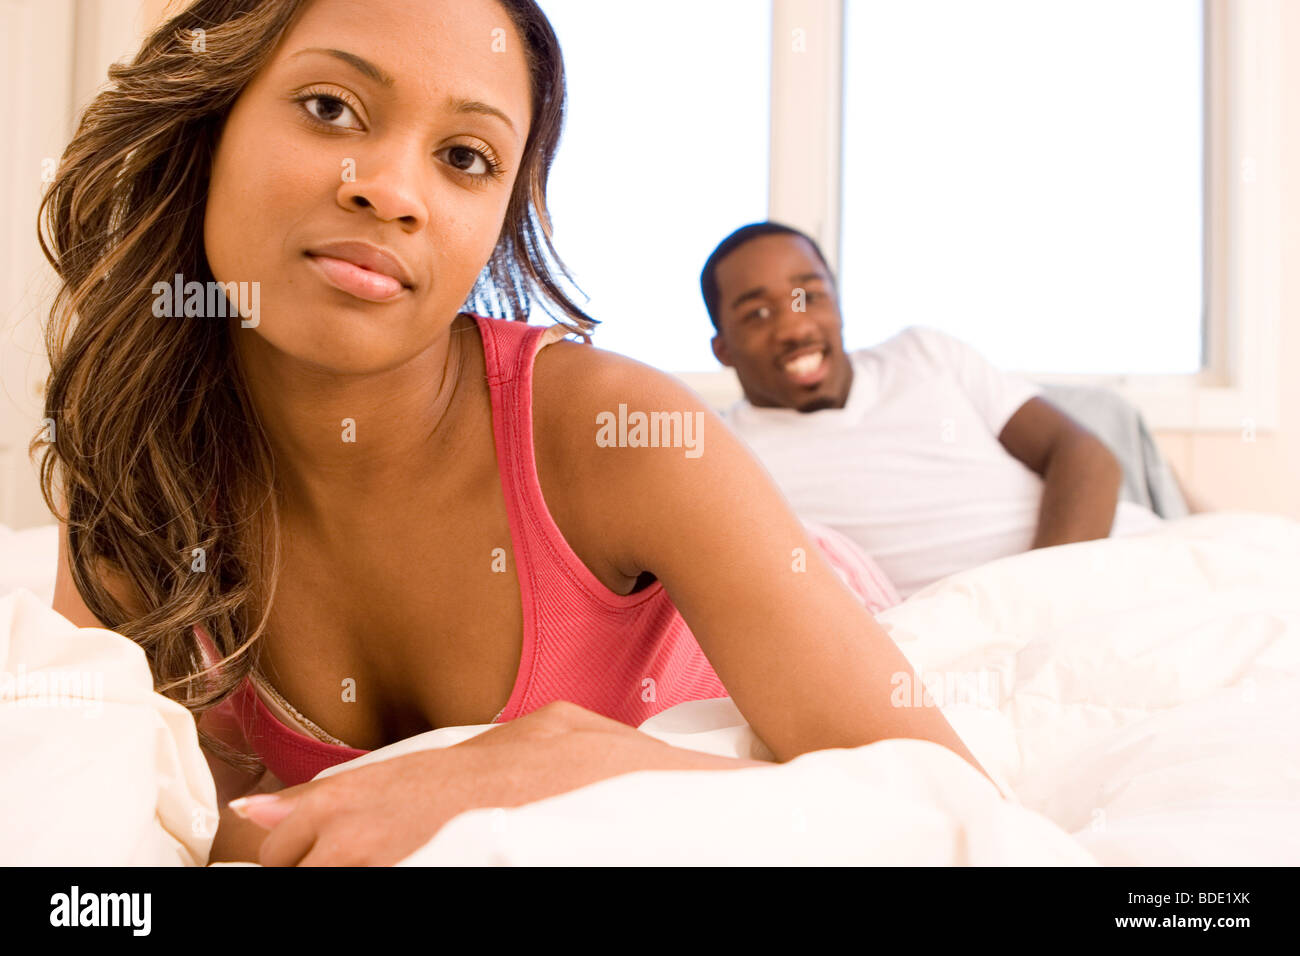 Couple in bed. - Stock Image